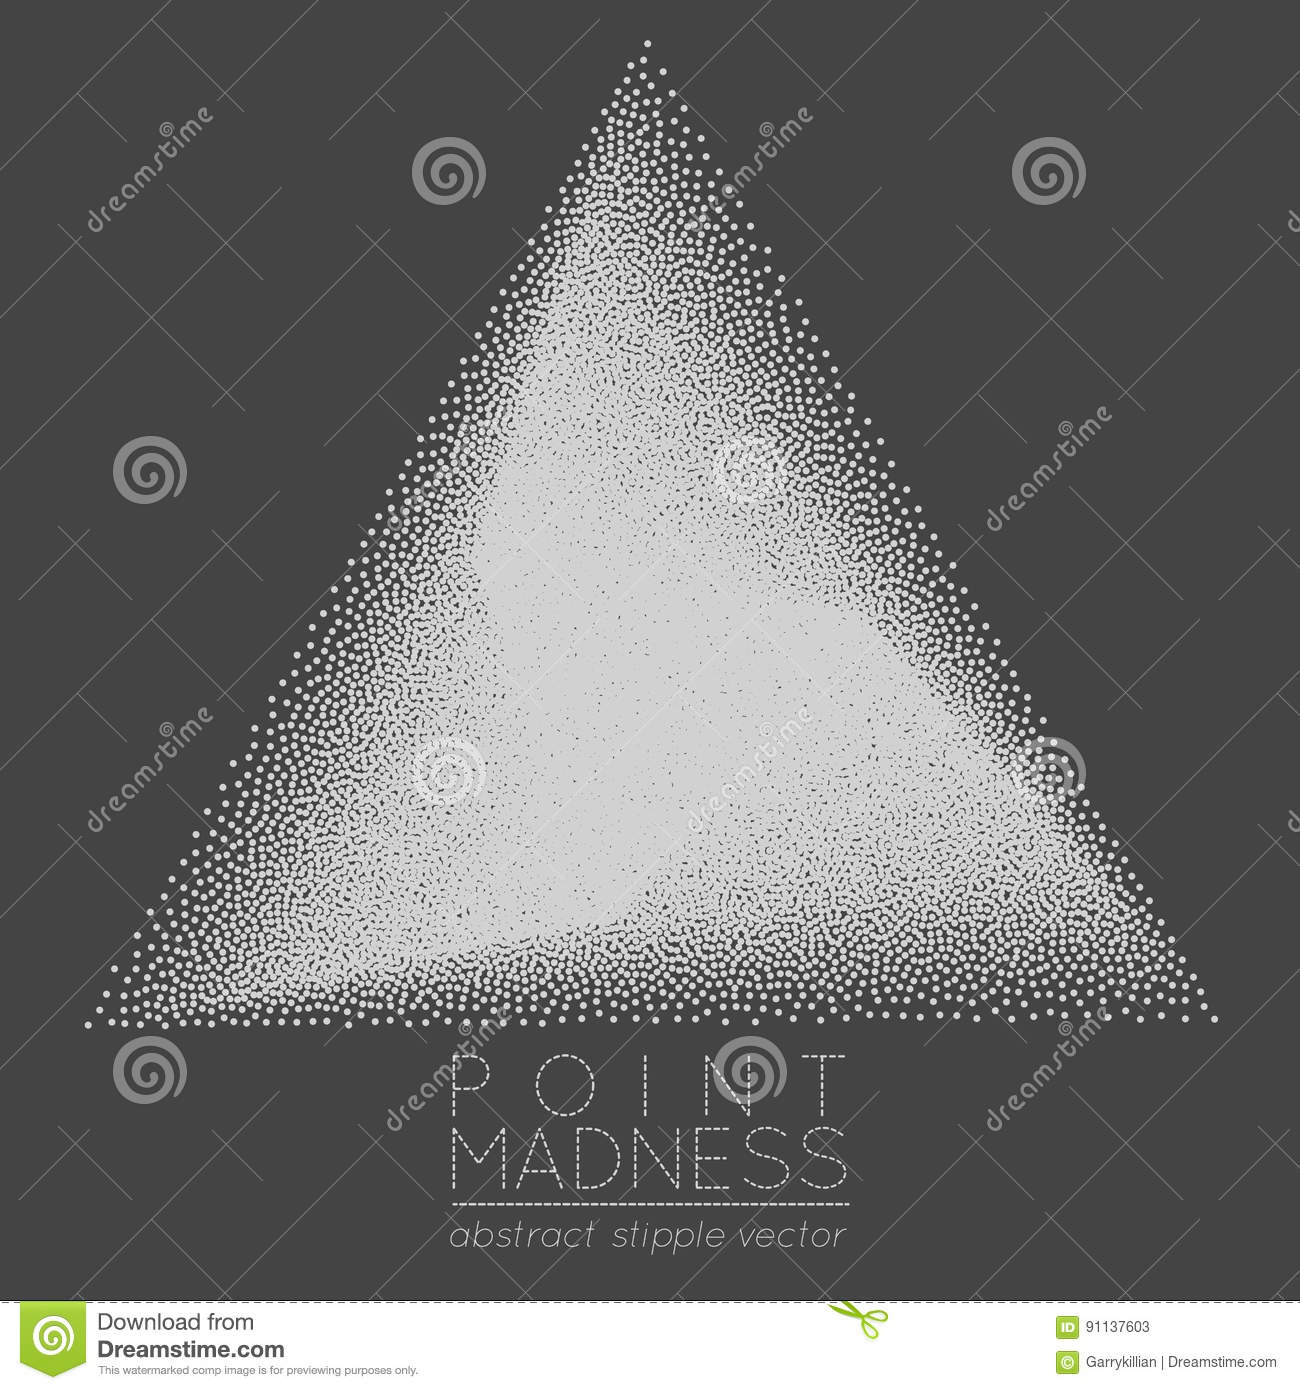 Vector Illustration Of Abstract Dotted Symbol Delta Fading Outside